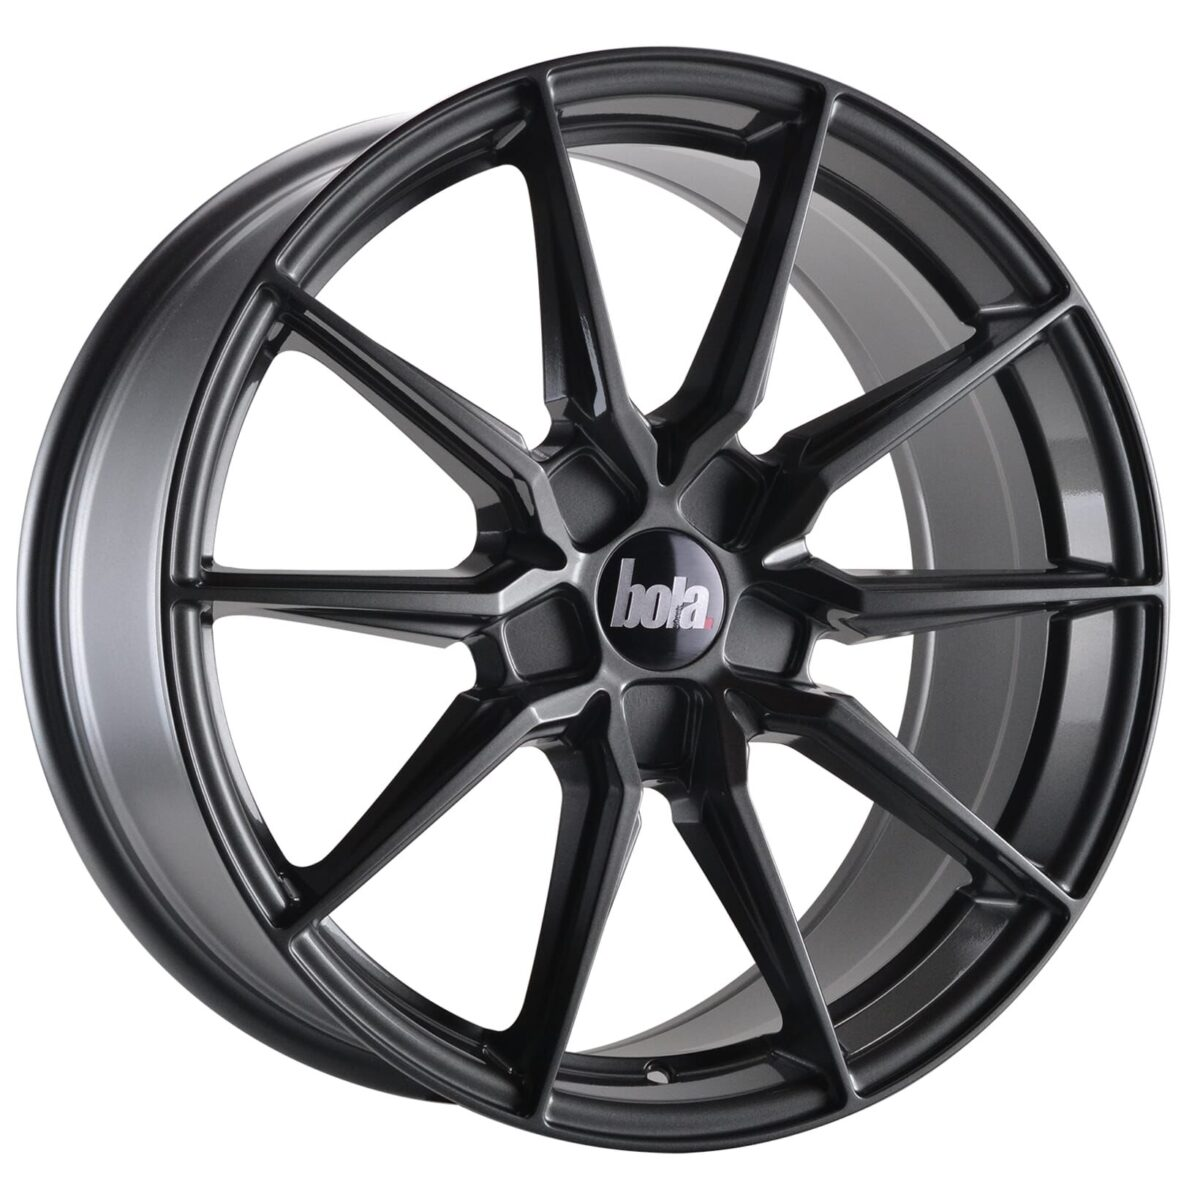 "19"" BOLA B16 Wheels - Gloss Gunmetal - All BMW Models"